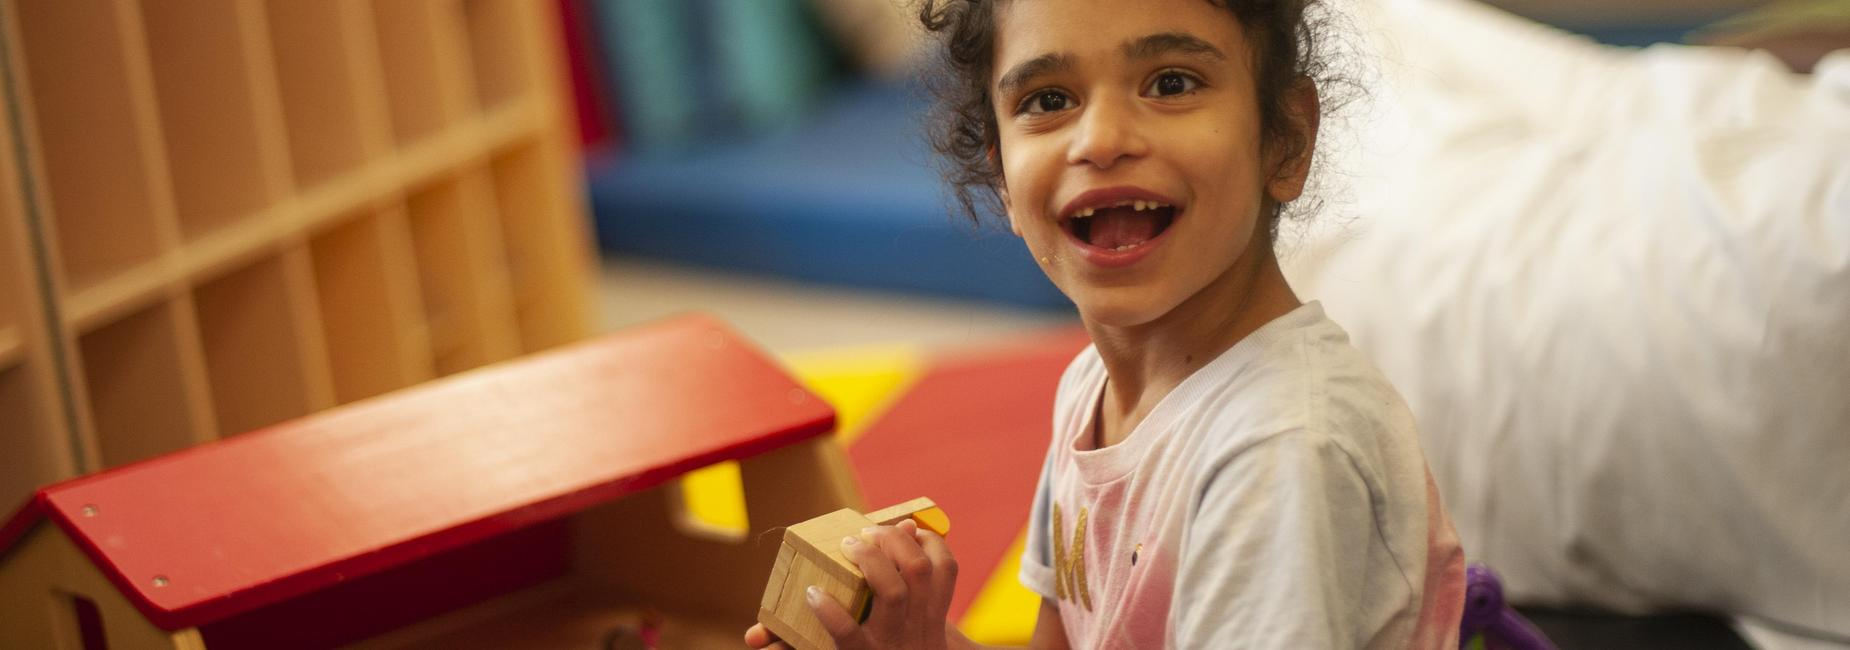 Student in the middle program plays with wooden blocks